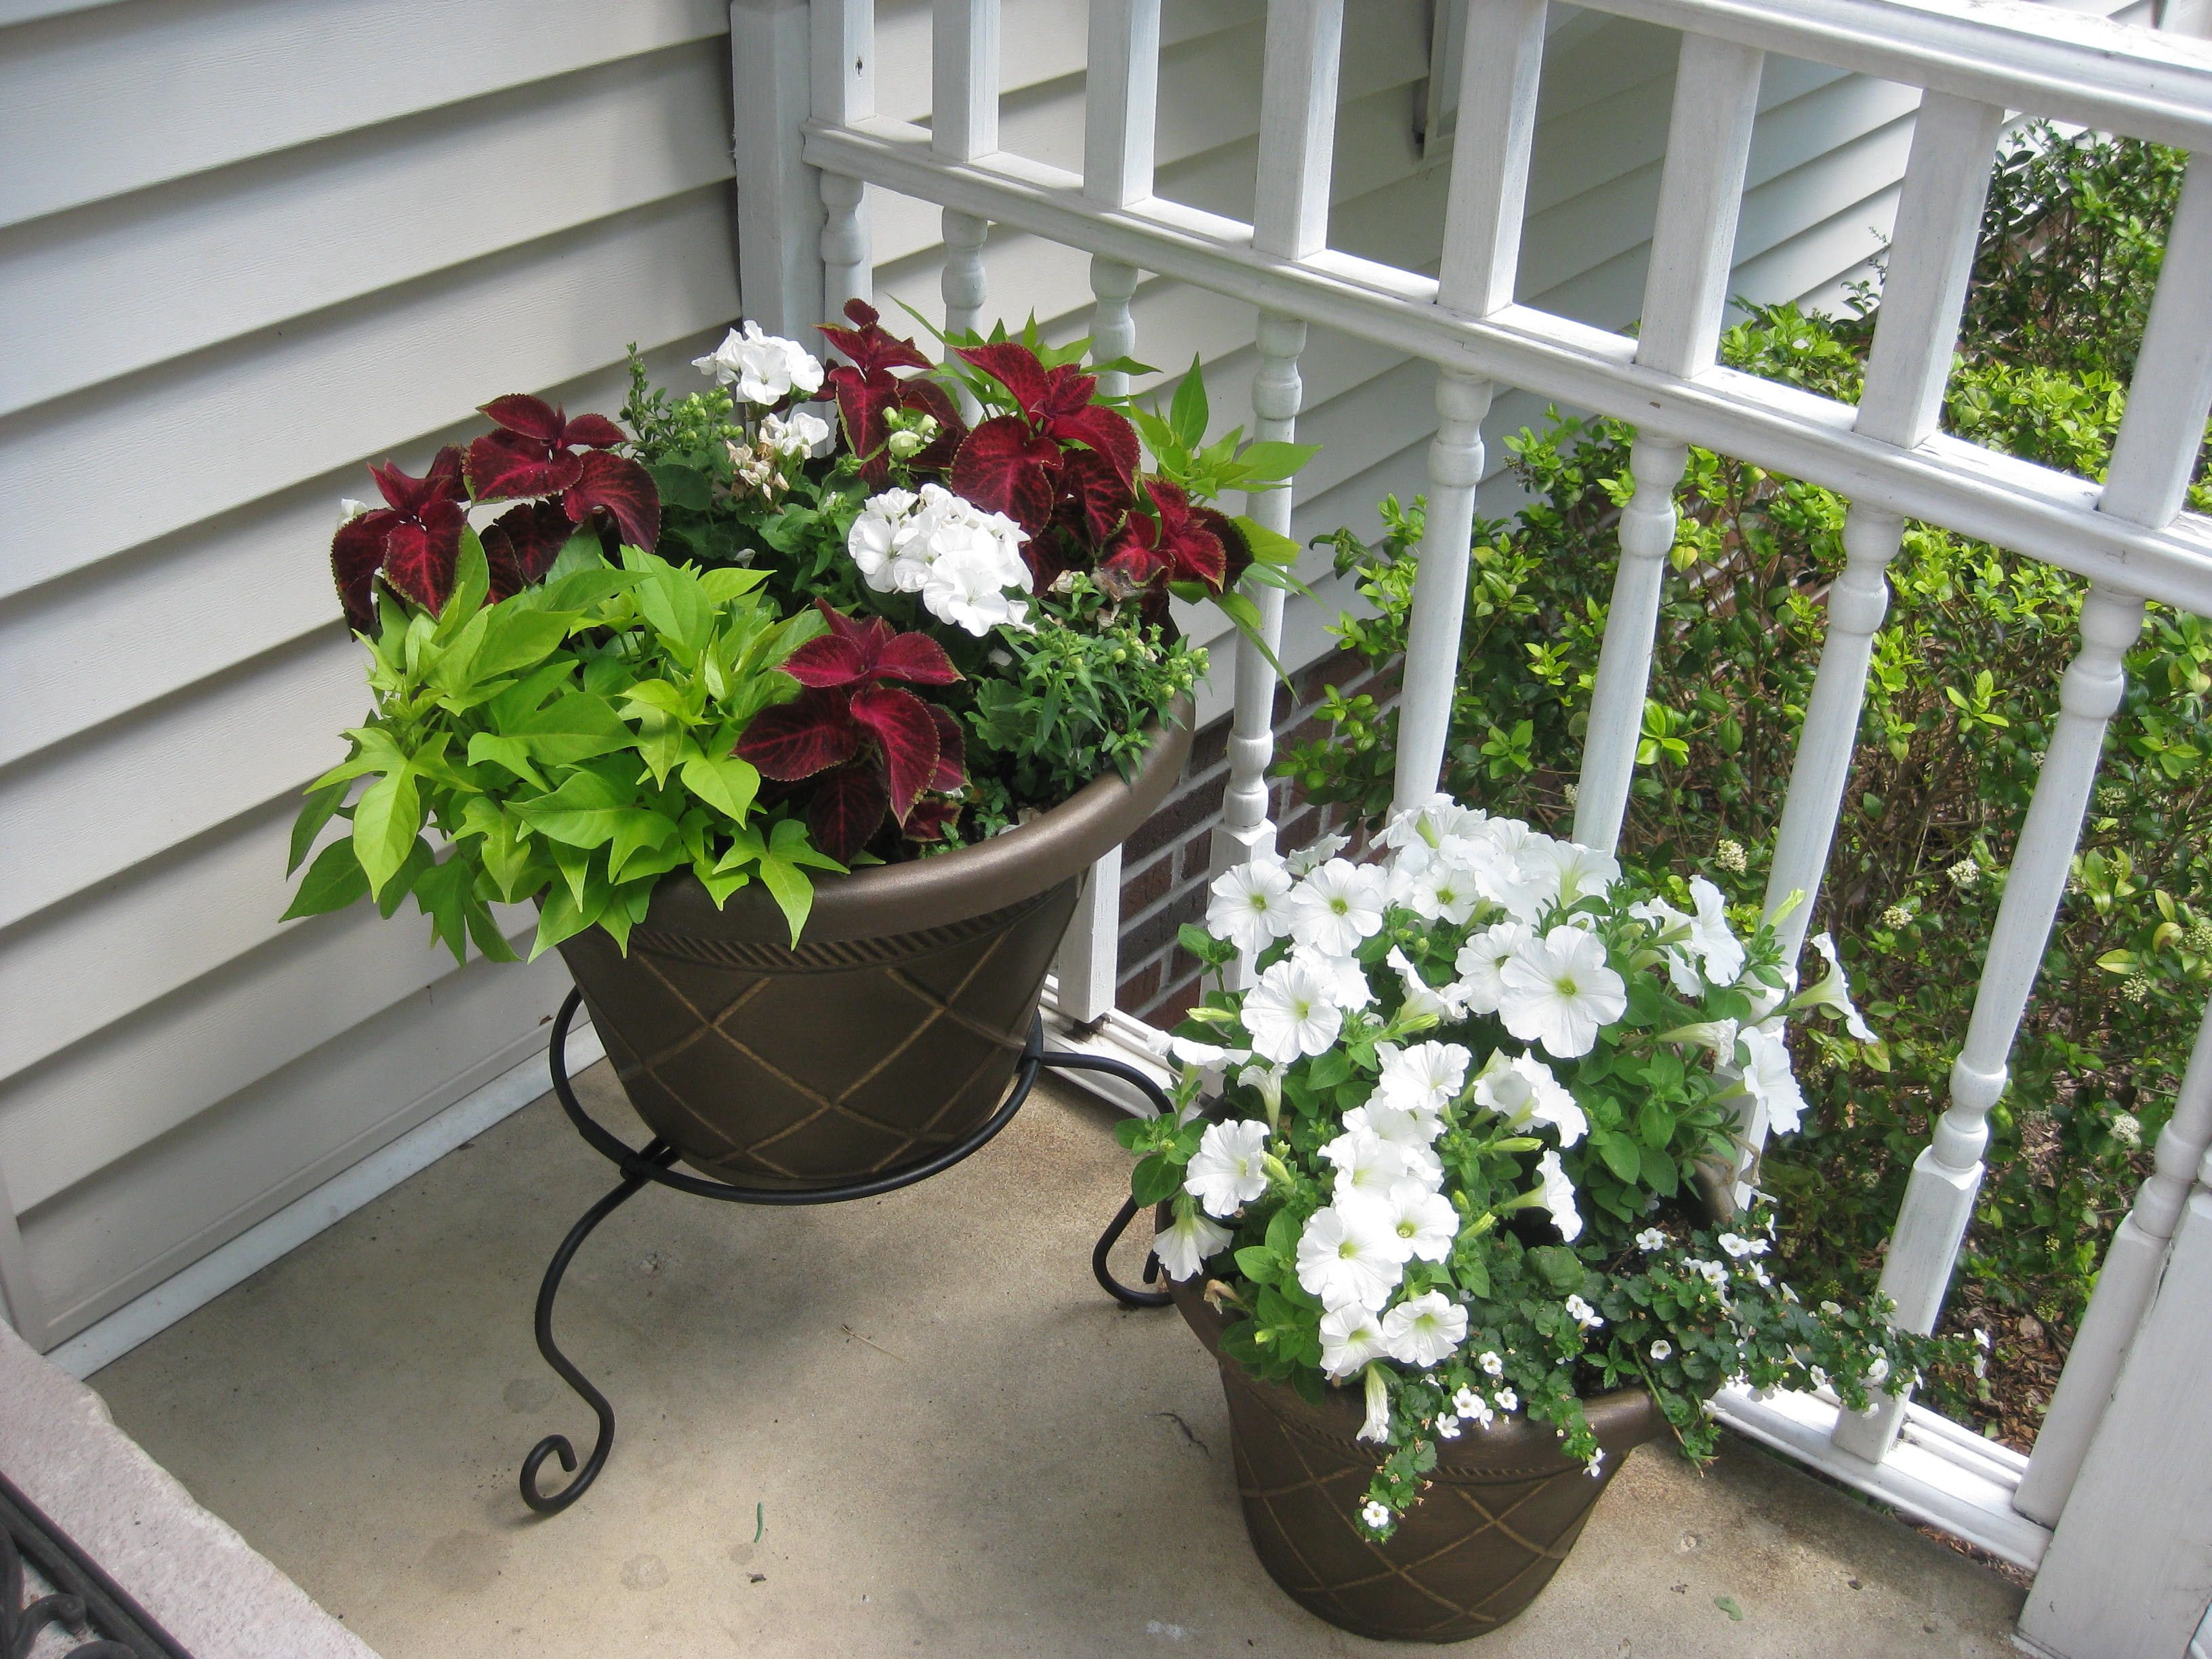 My front porch flower pots, assorted annuals. Gardens